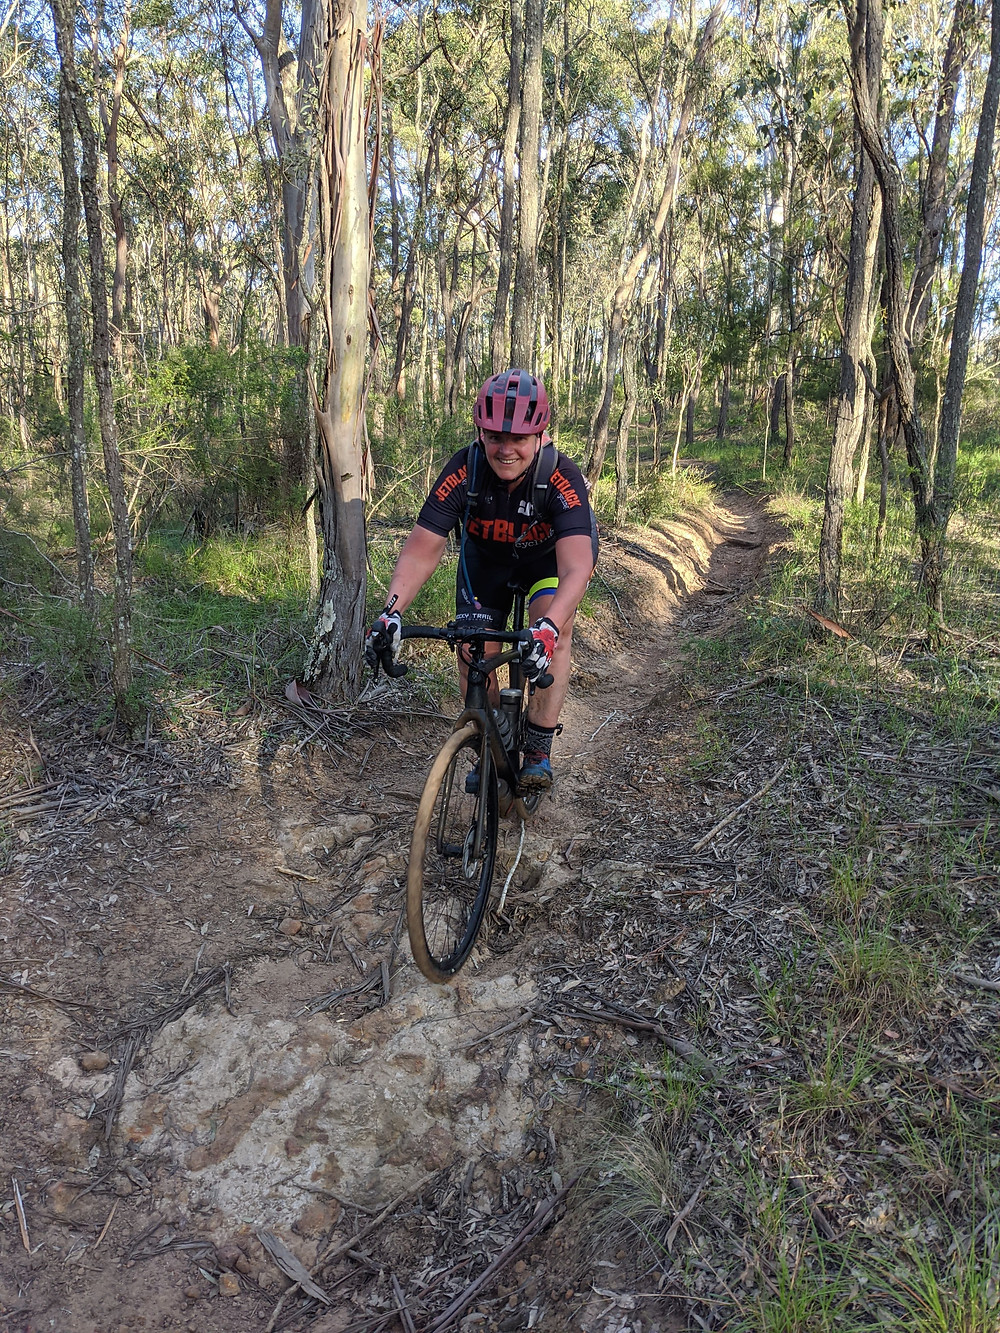 A fantastic national park in north western Sydney to do some gentle gravel bike riding!